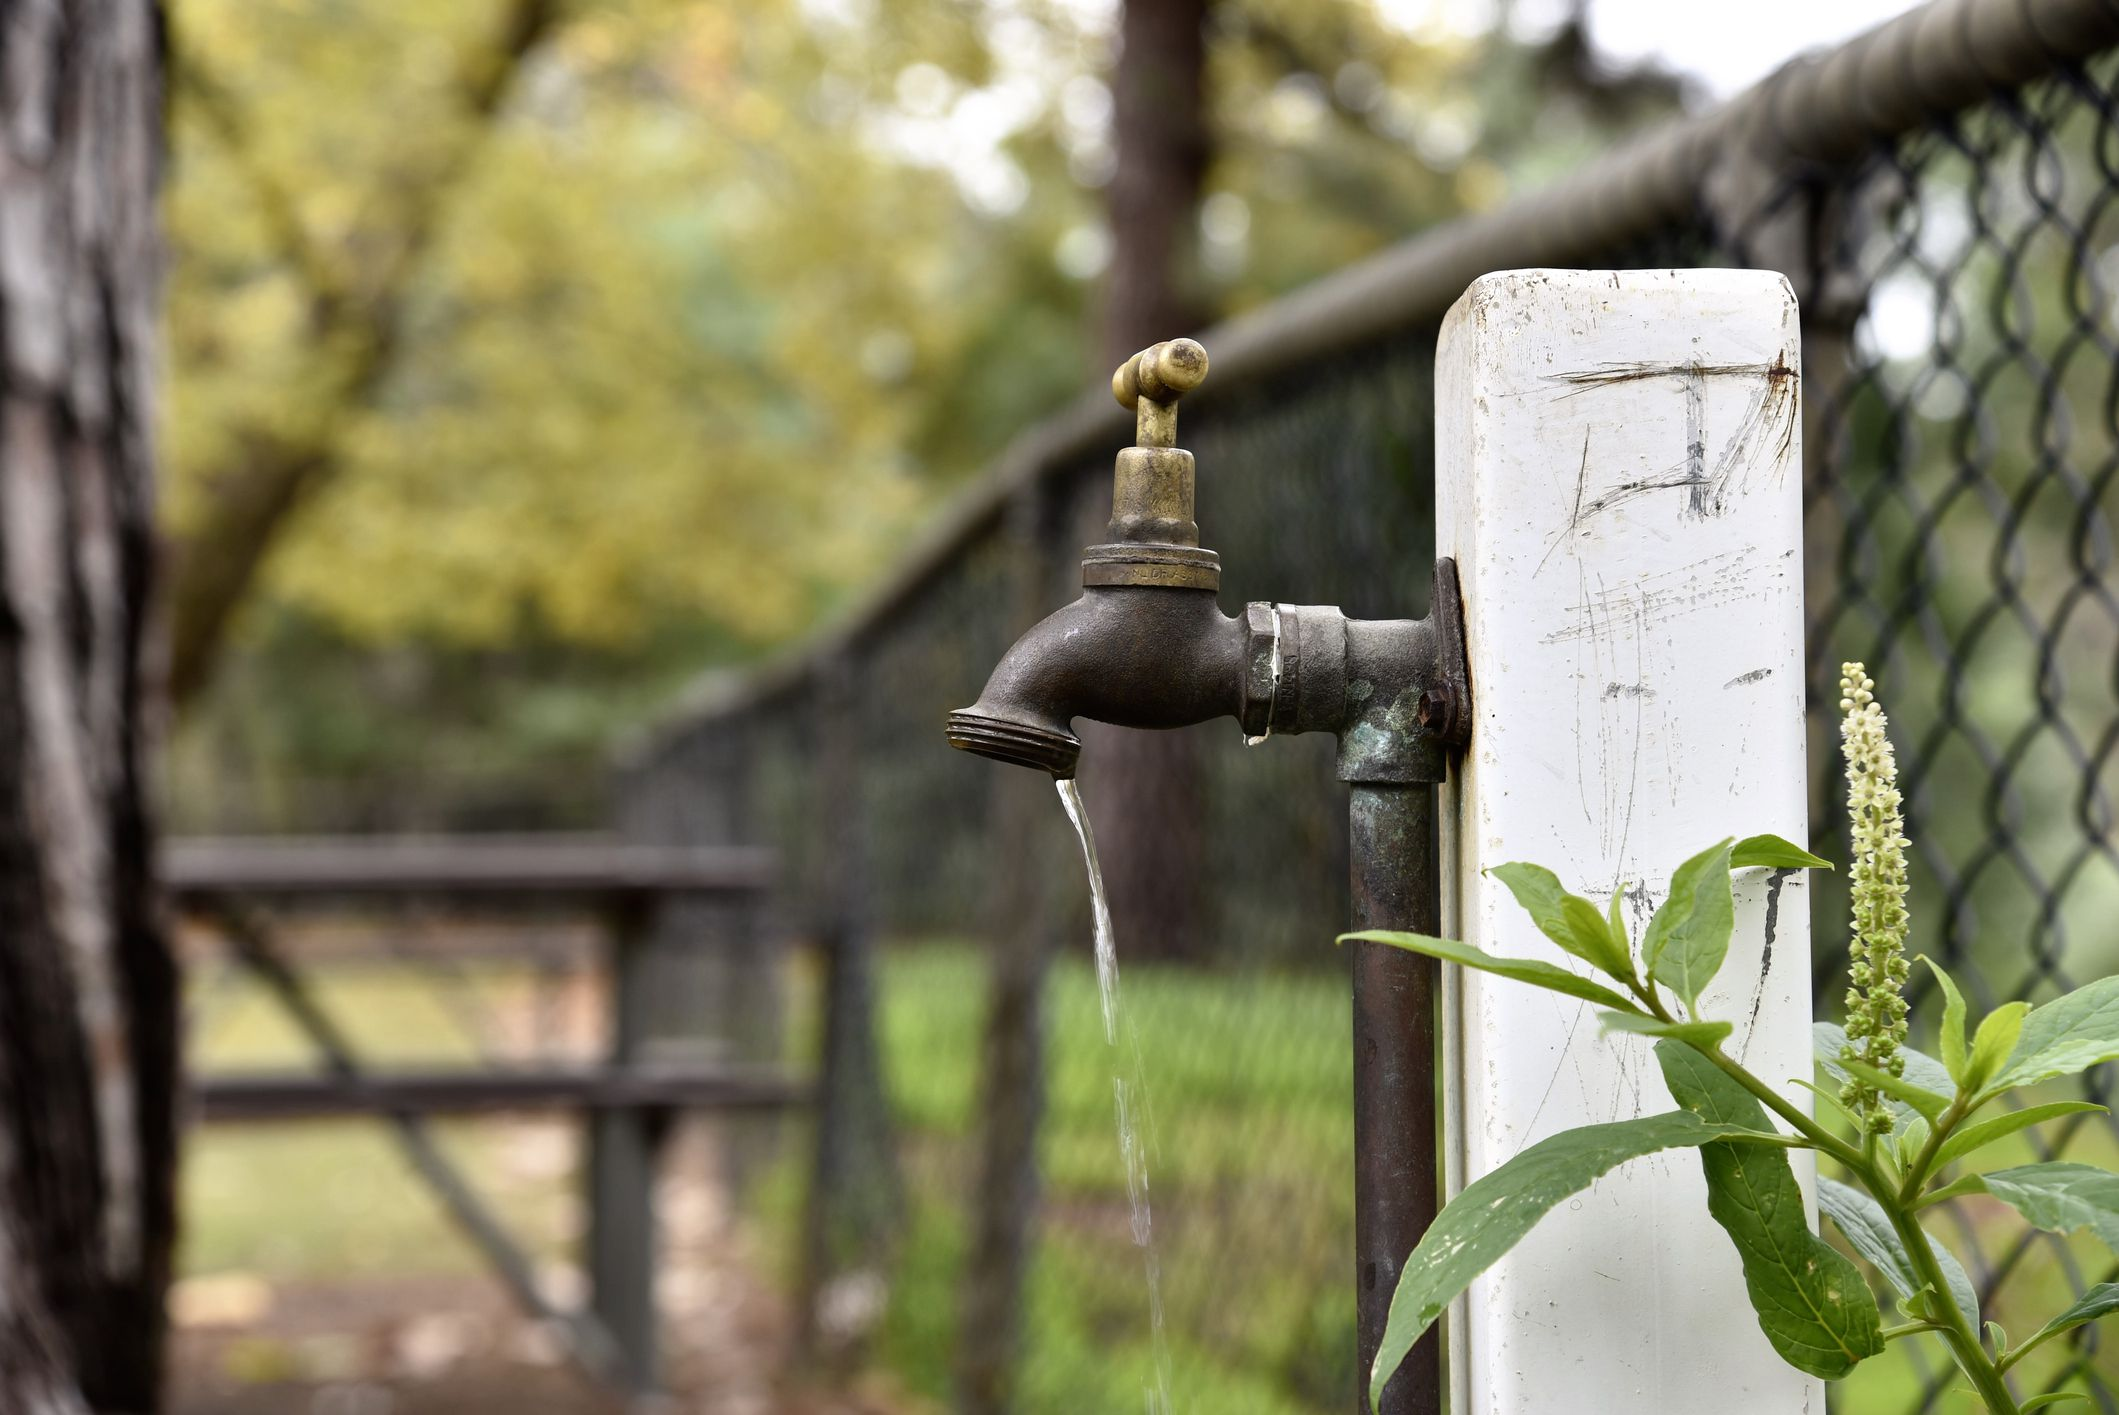 how to change water spigot outside